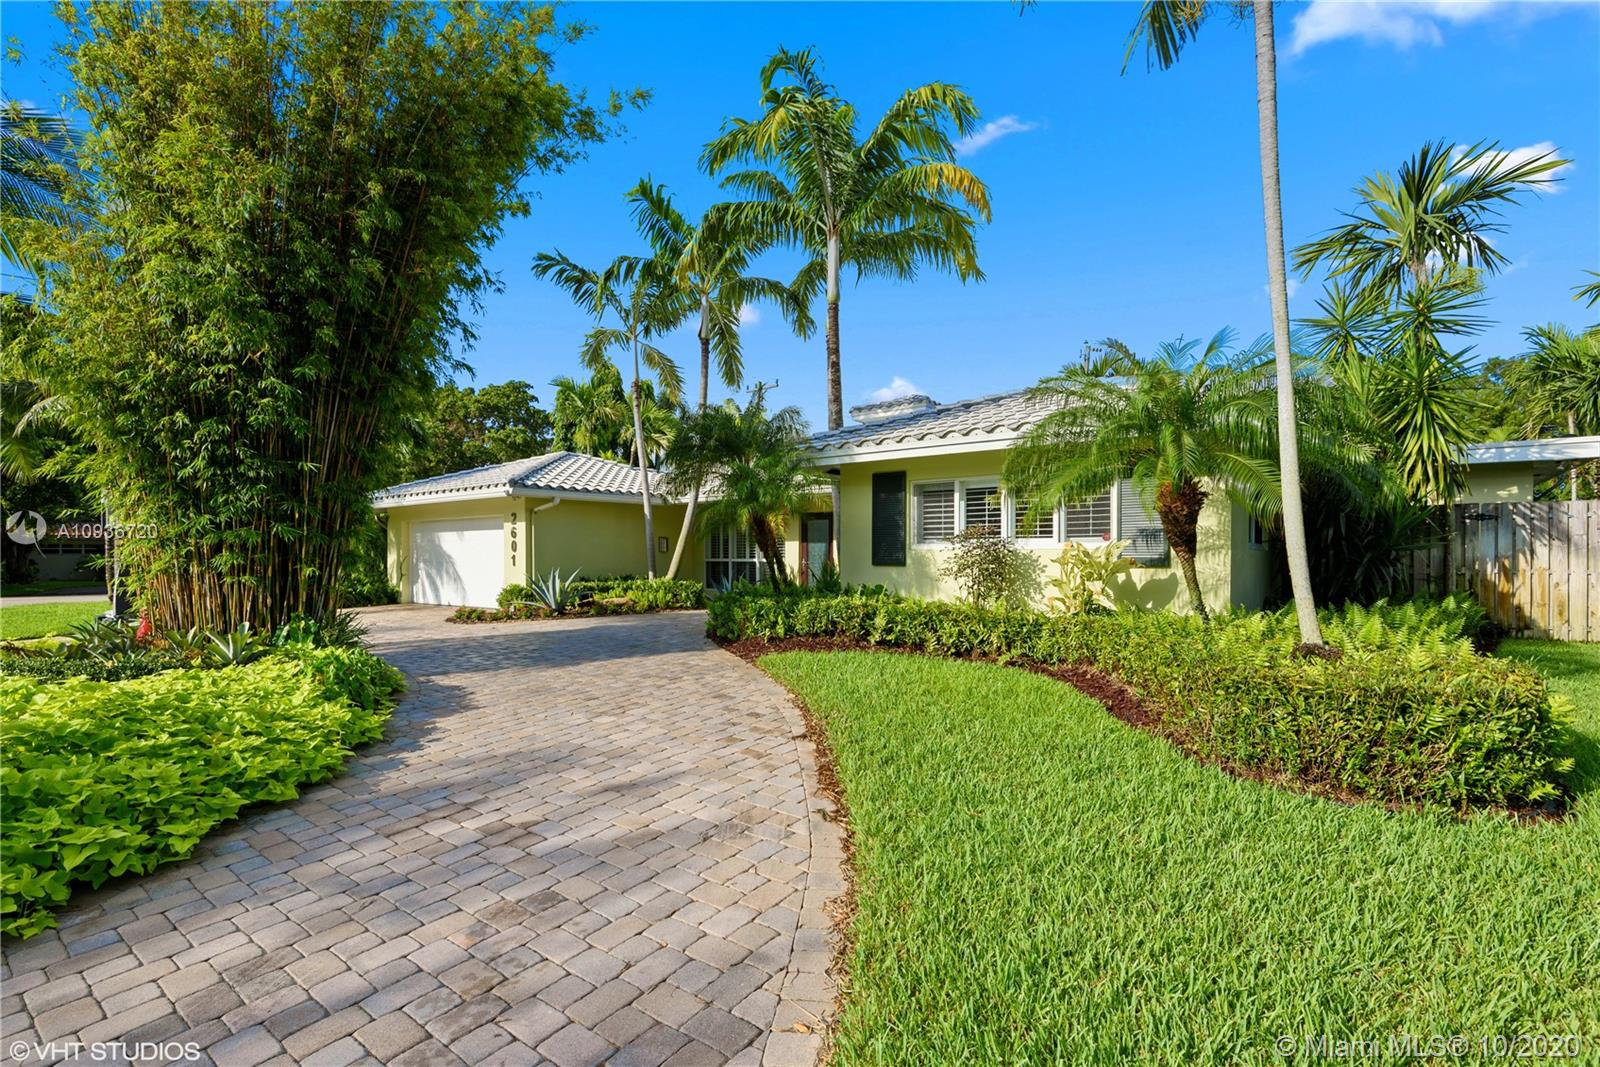 2601 NE 27th Ter Property Photo - Fort Lauderdale, FL real estate listing